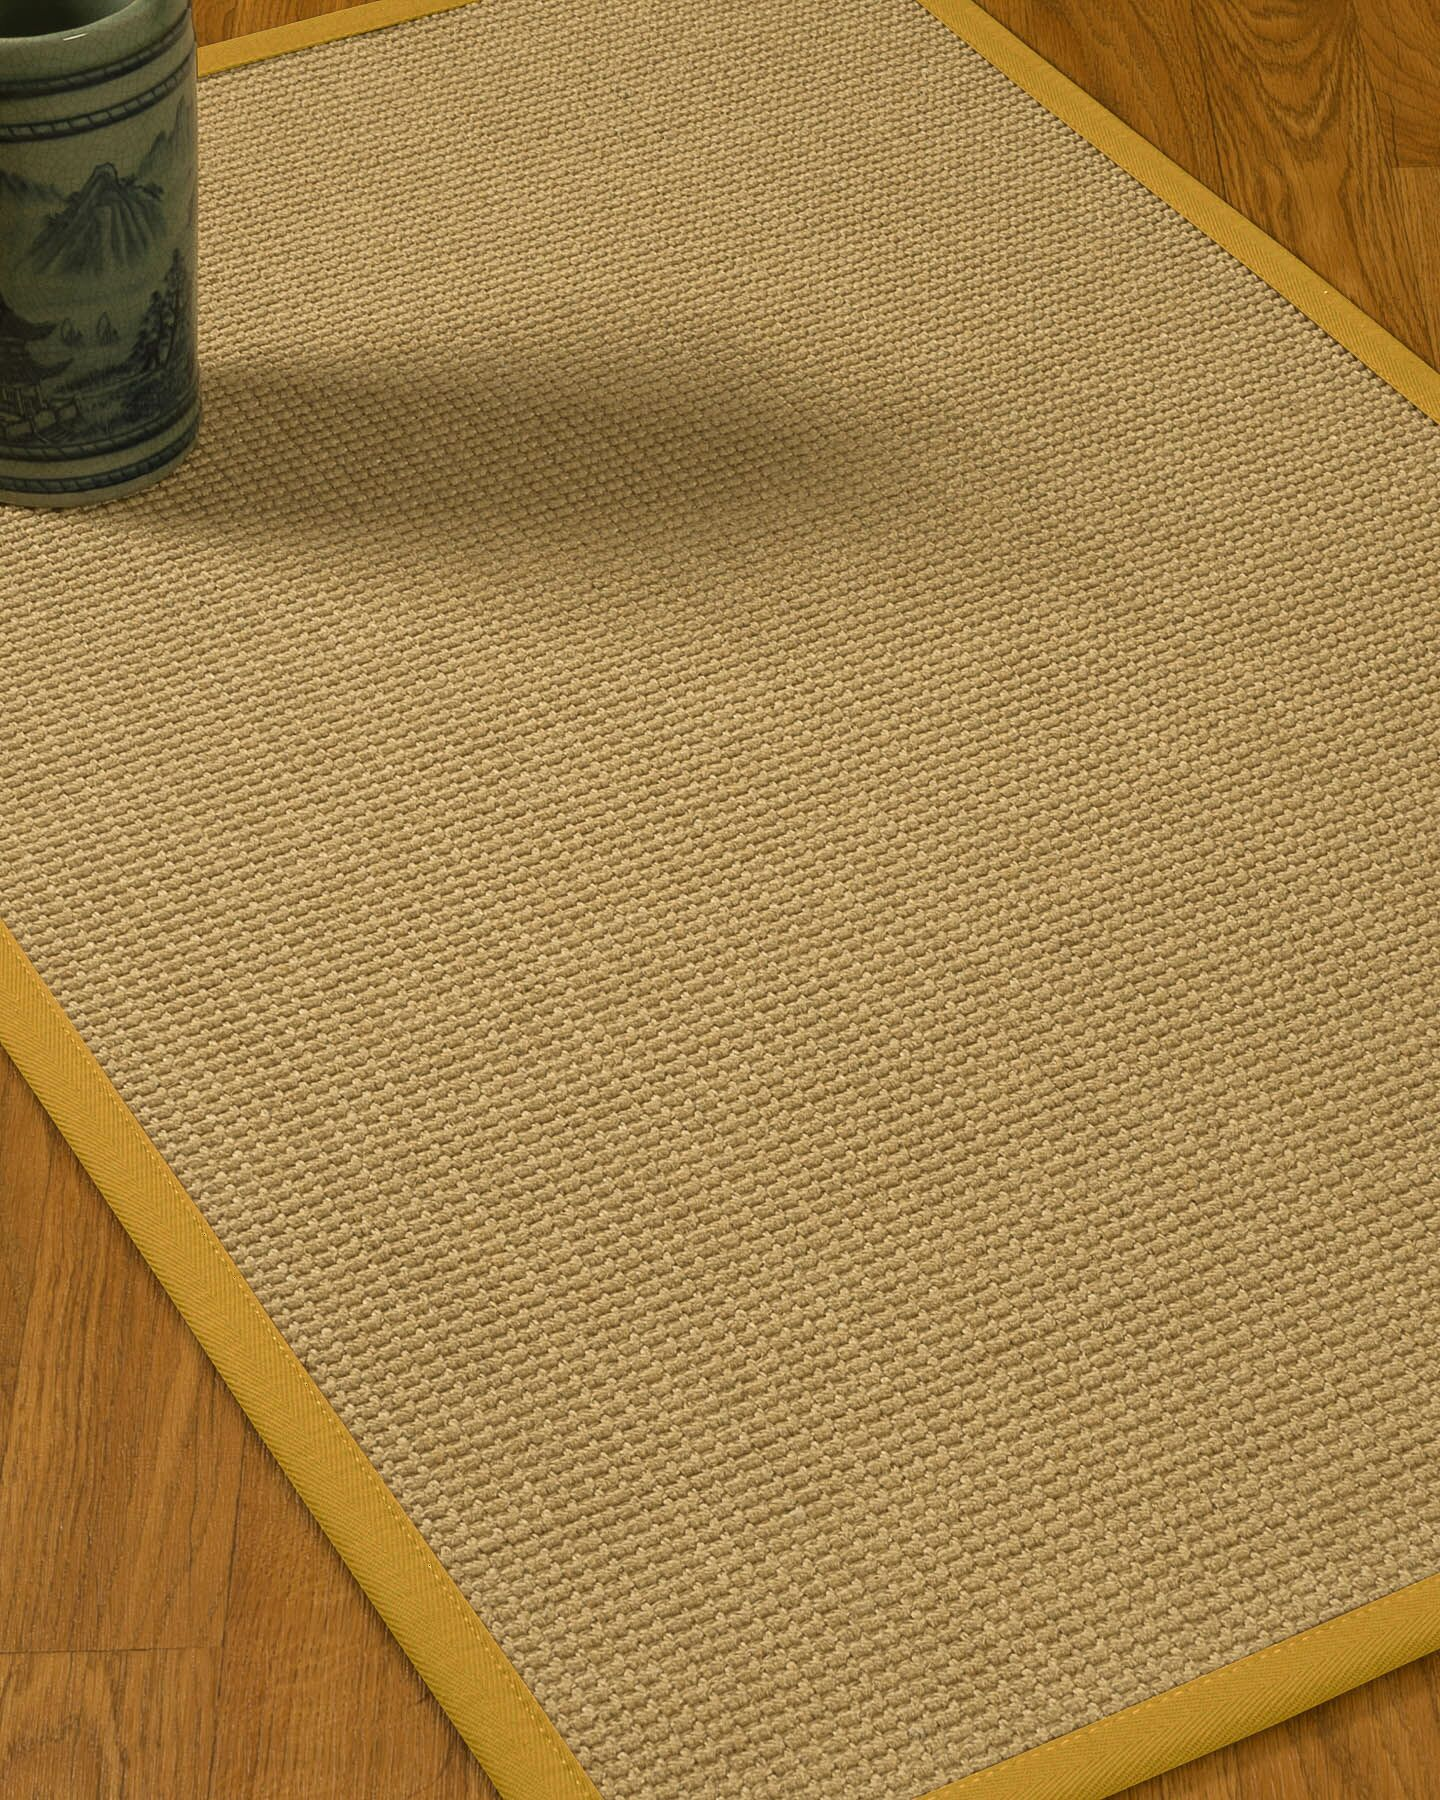 Jacobs Border Hand-Woven Beige/Tan Area Rug Rug Size: Rectangle 8' x 10', Rug Pad Included: Yes